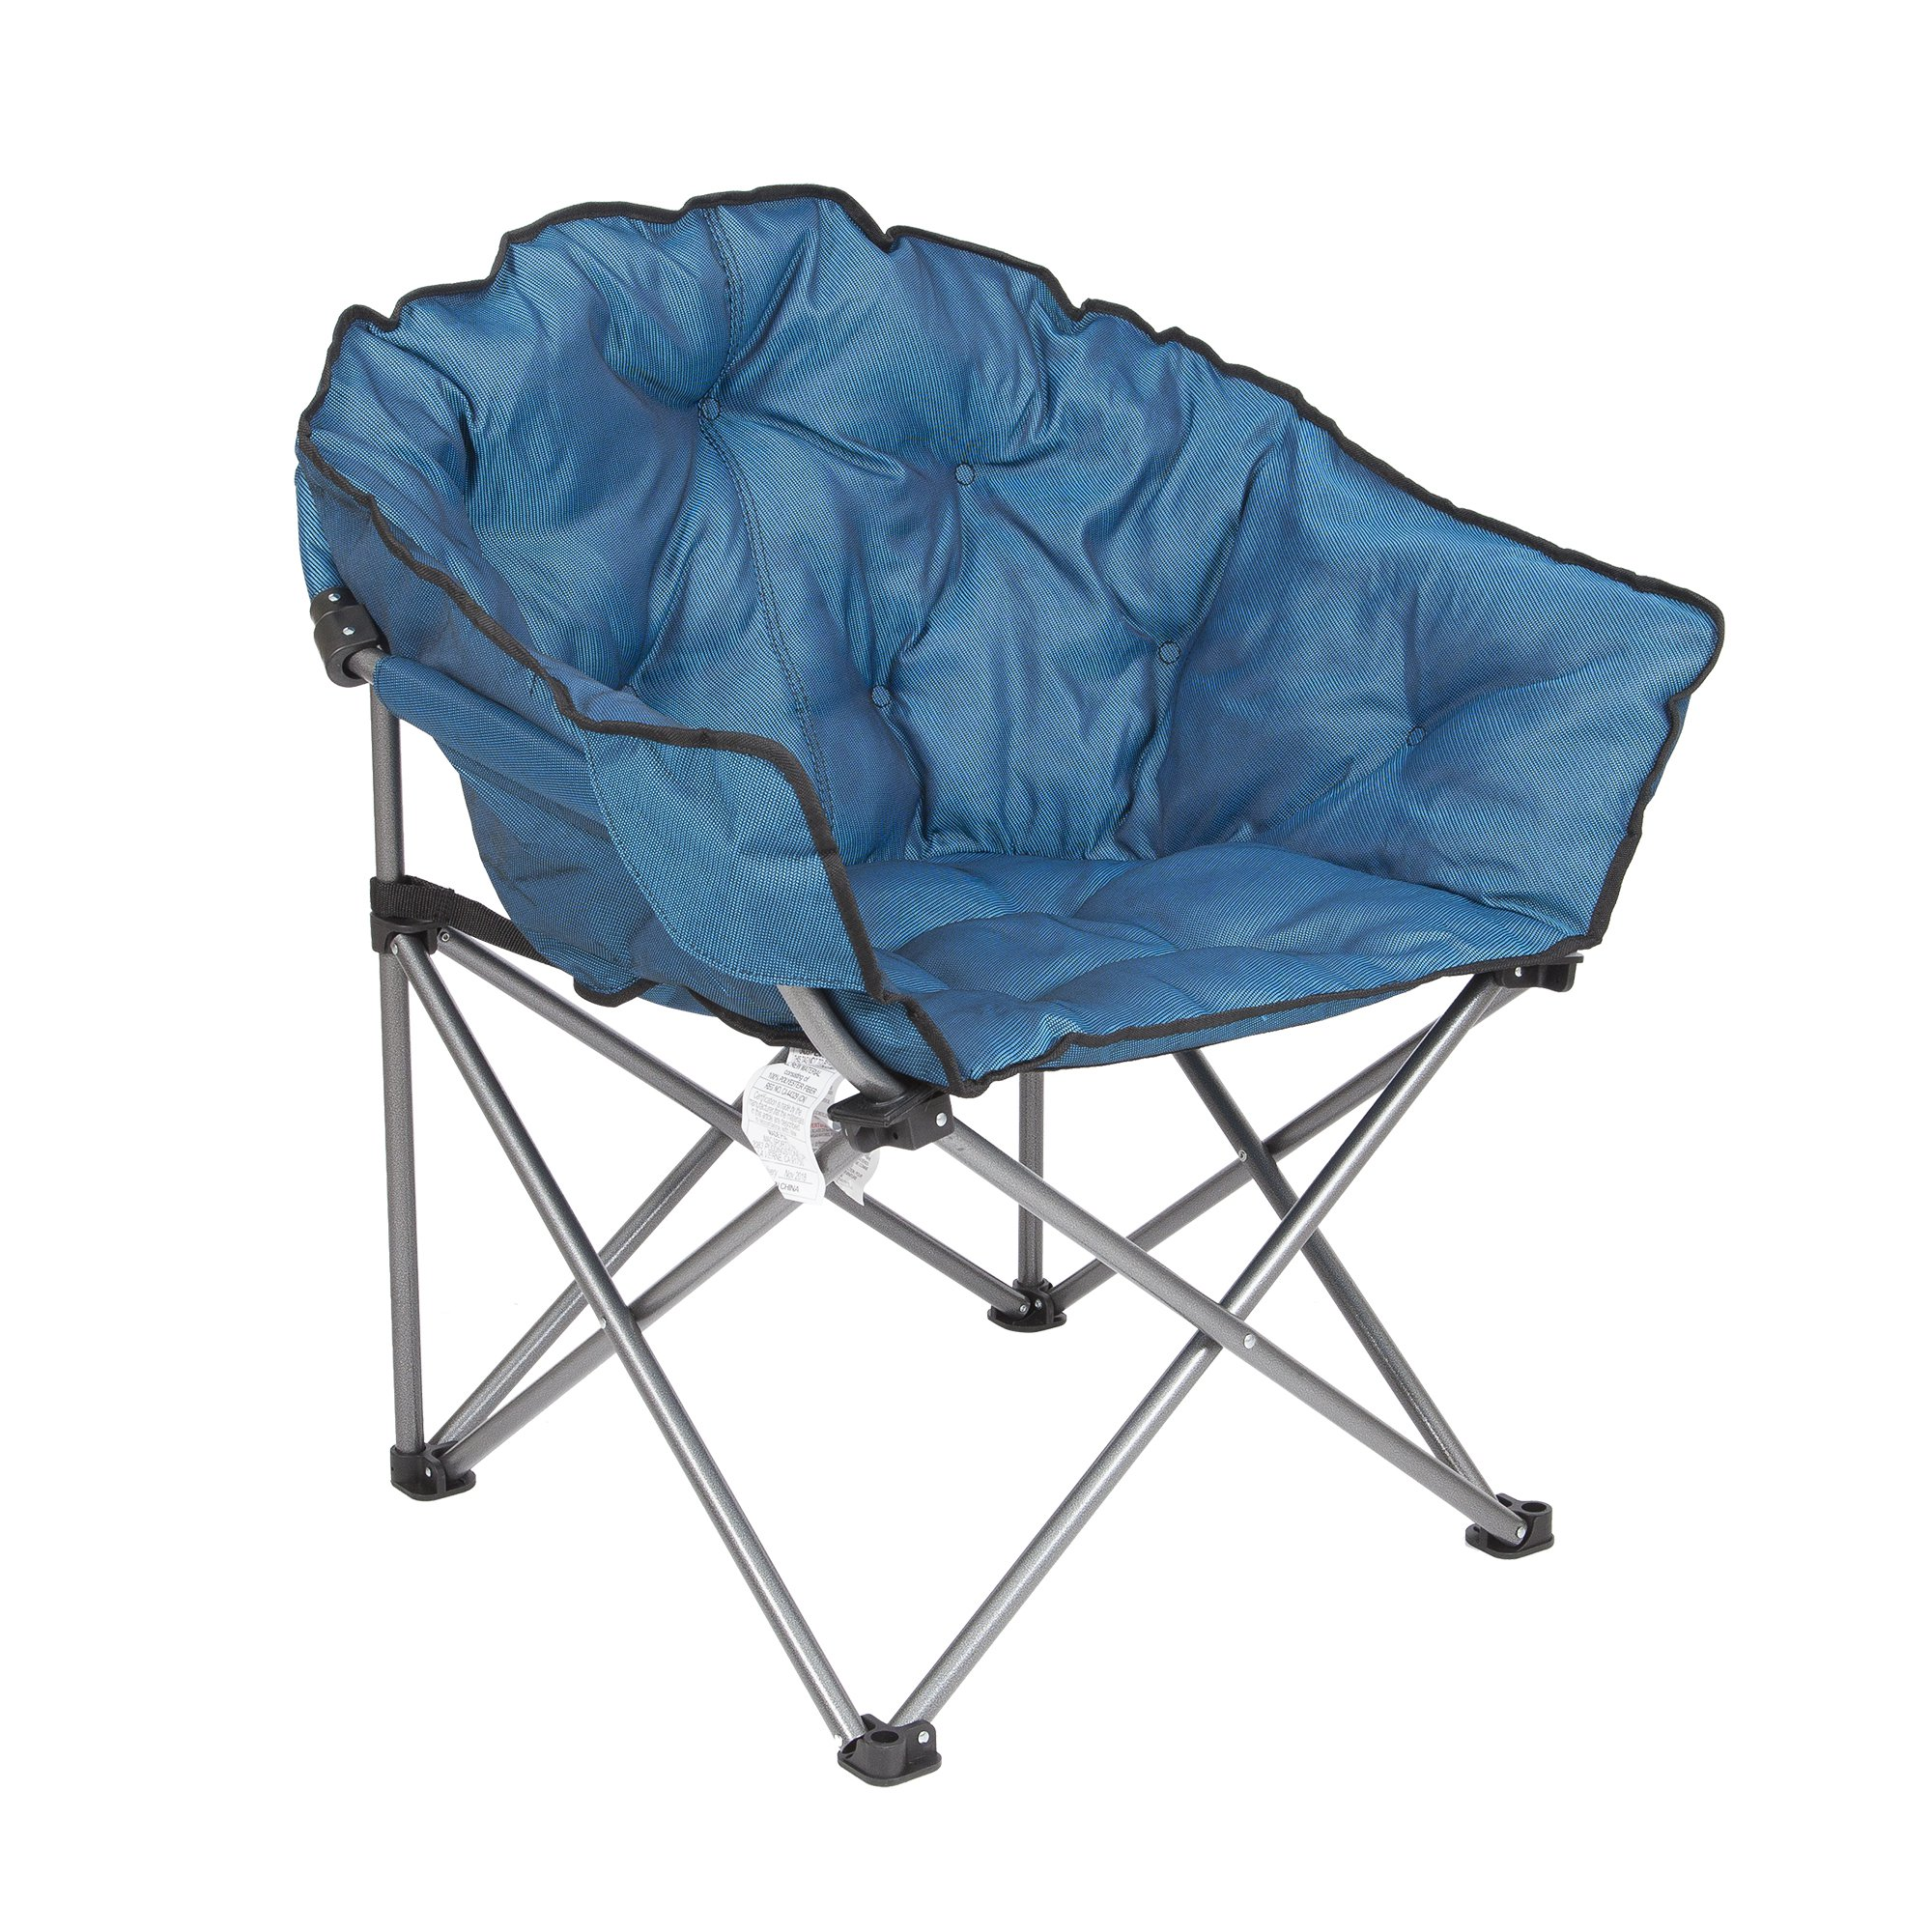 Enjoyable Mac Sports Folding Portable Padded Outdoor Club Camping Chair With Bag Blue Gmtry Best Dining Table And Chair Ideas Images Gmtryco